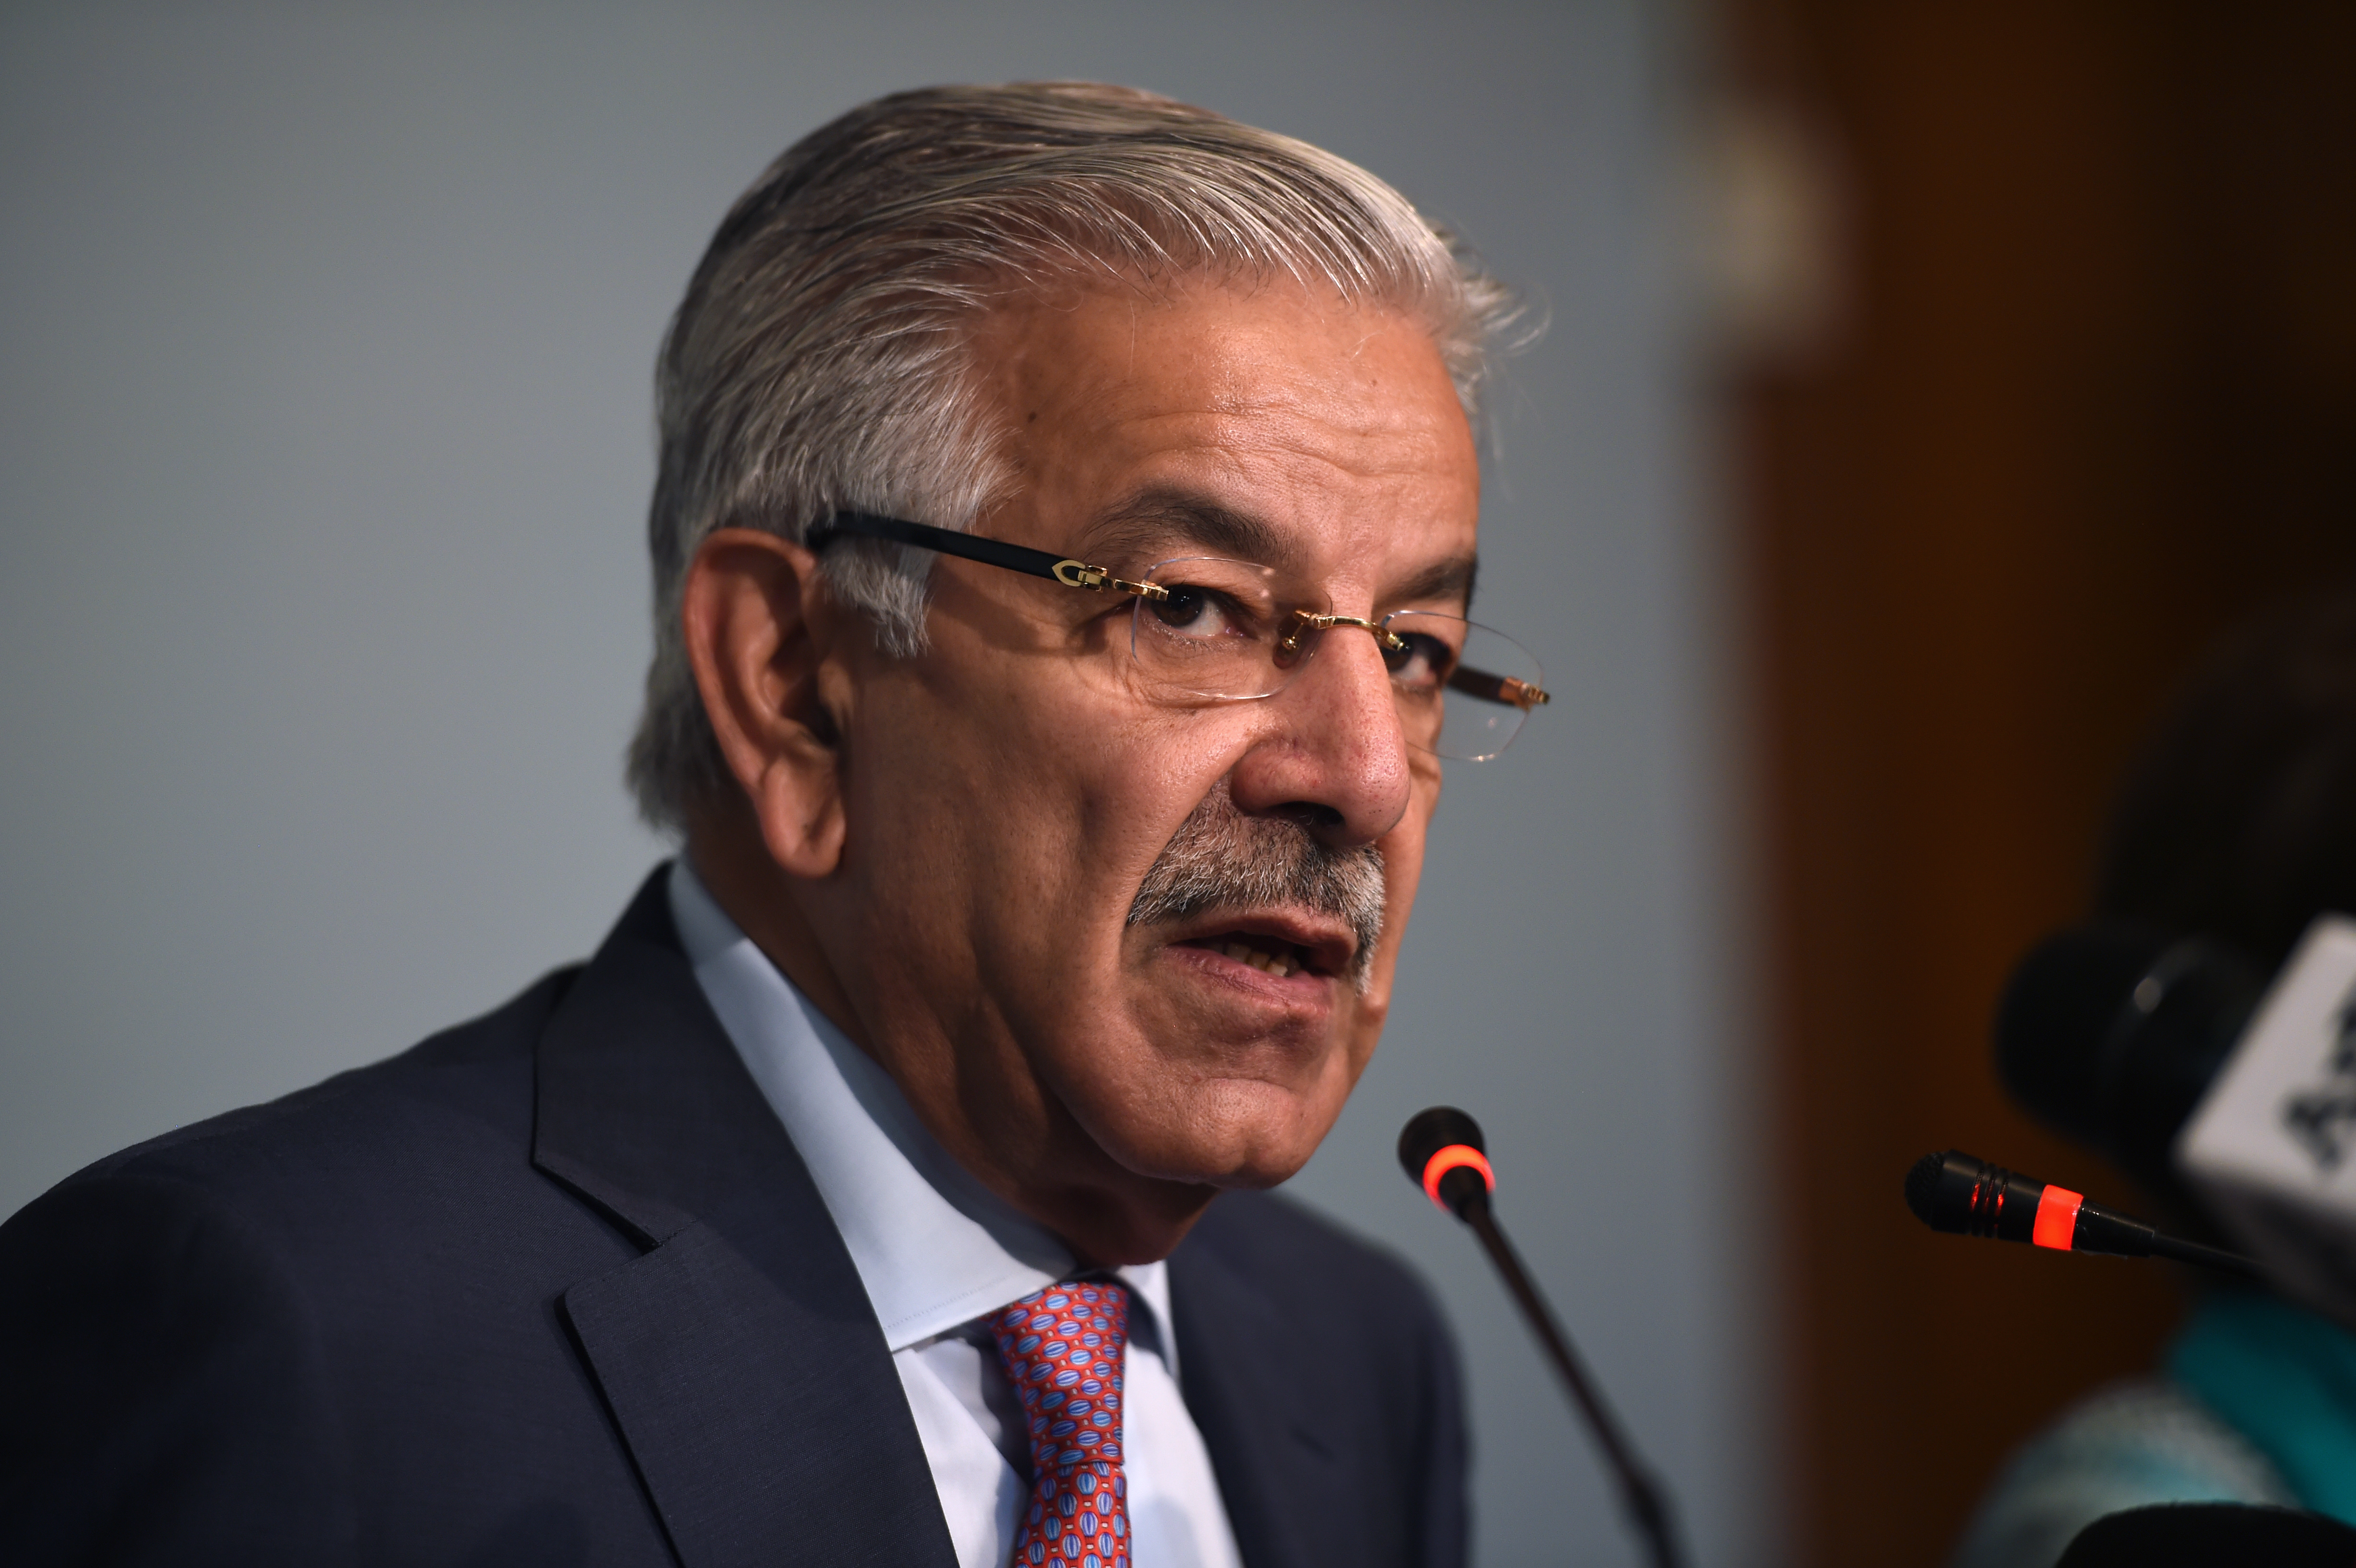 Pakistani Foreign Minister Khawaja Asif briefs the media at the end of a three-day conference in Islamabad, Pakistan, Sep. 7, 2017.